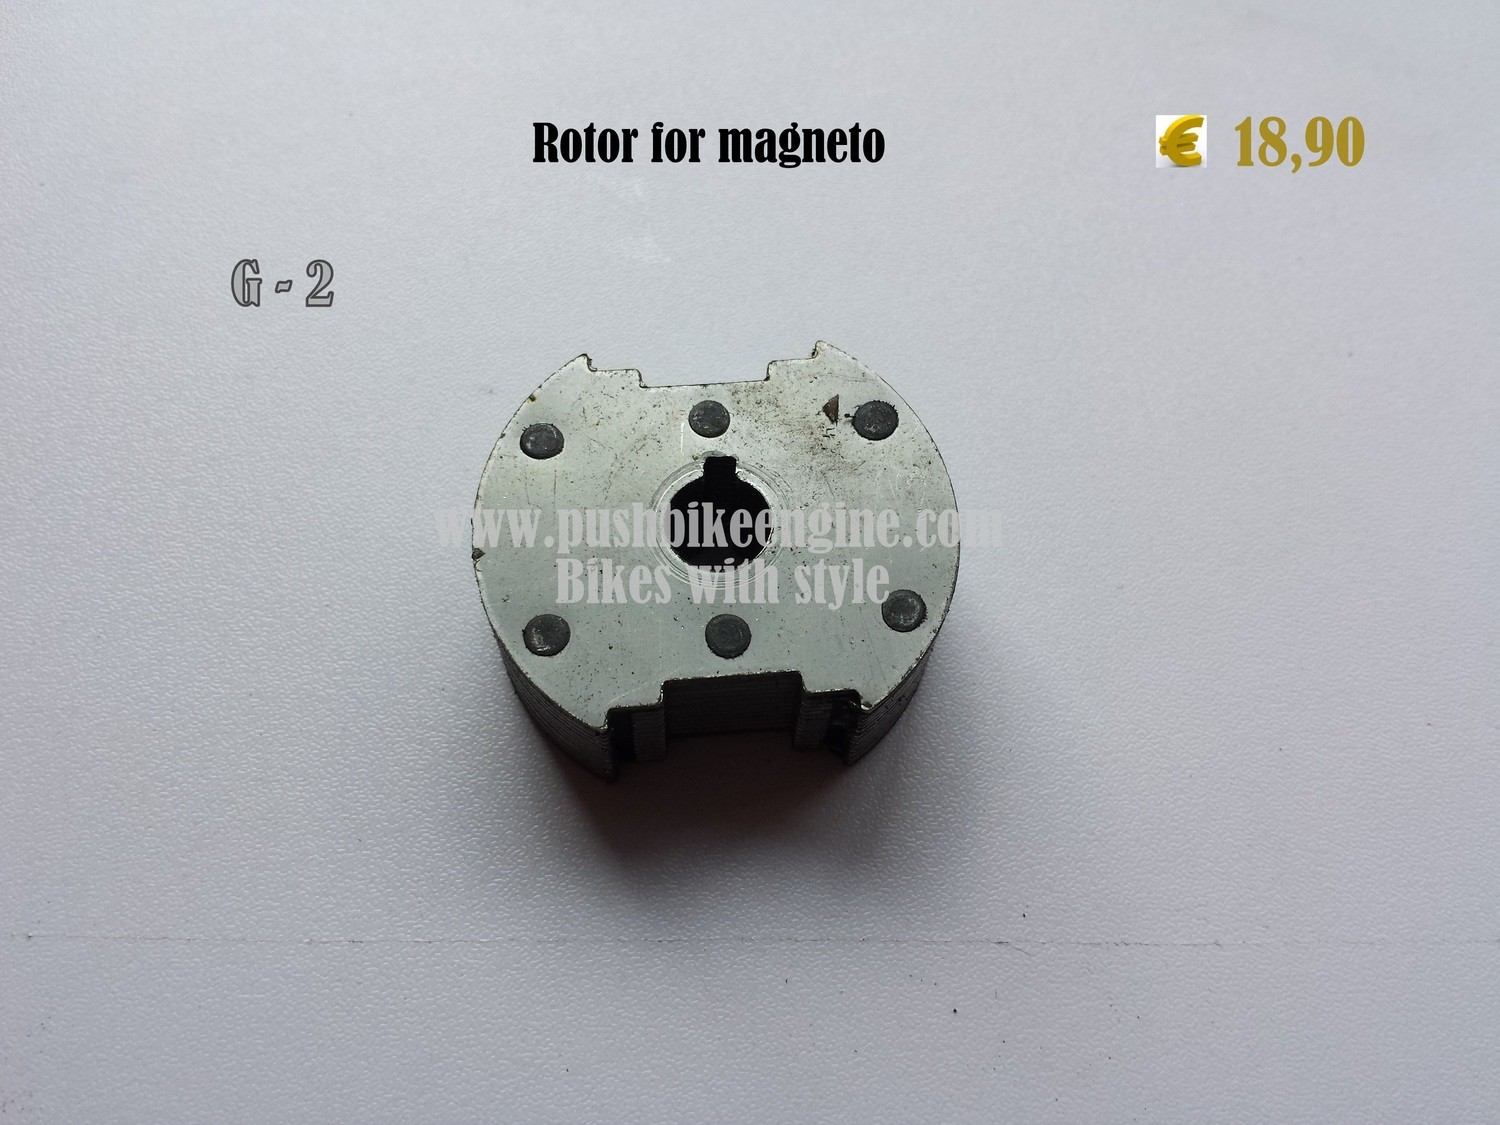 Rotor for magneto